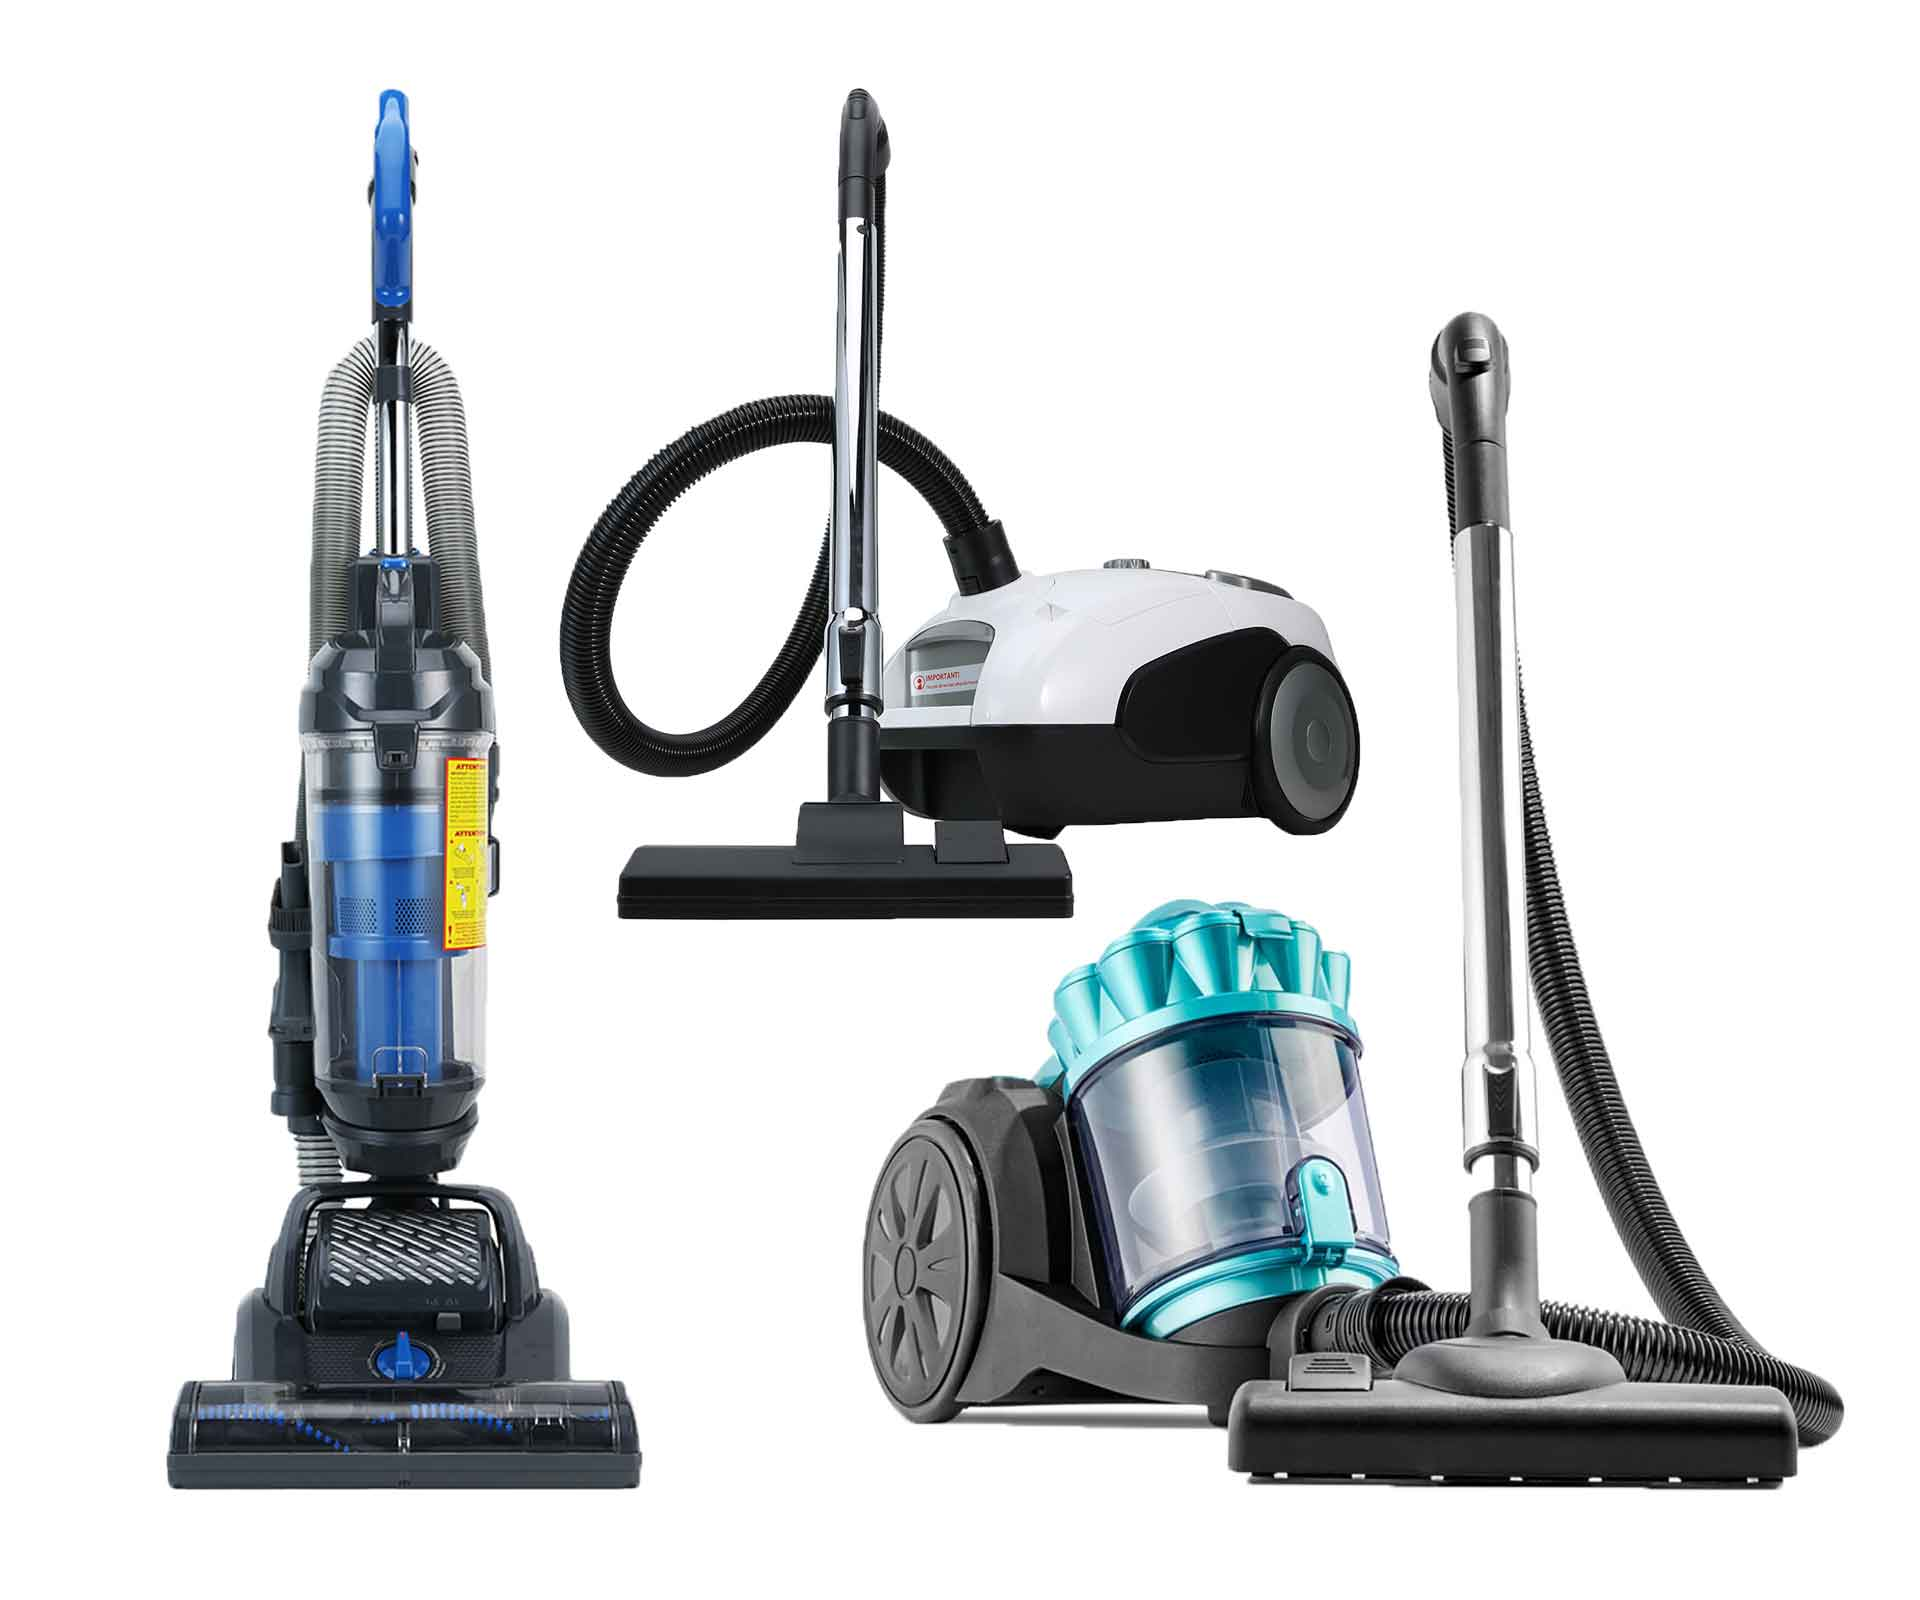 The best Kmart vacuum cleaner according to independent reviewers